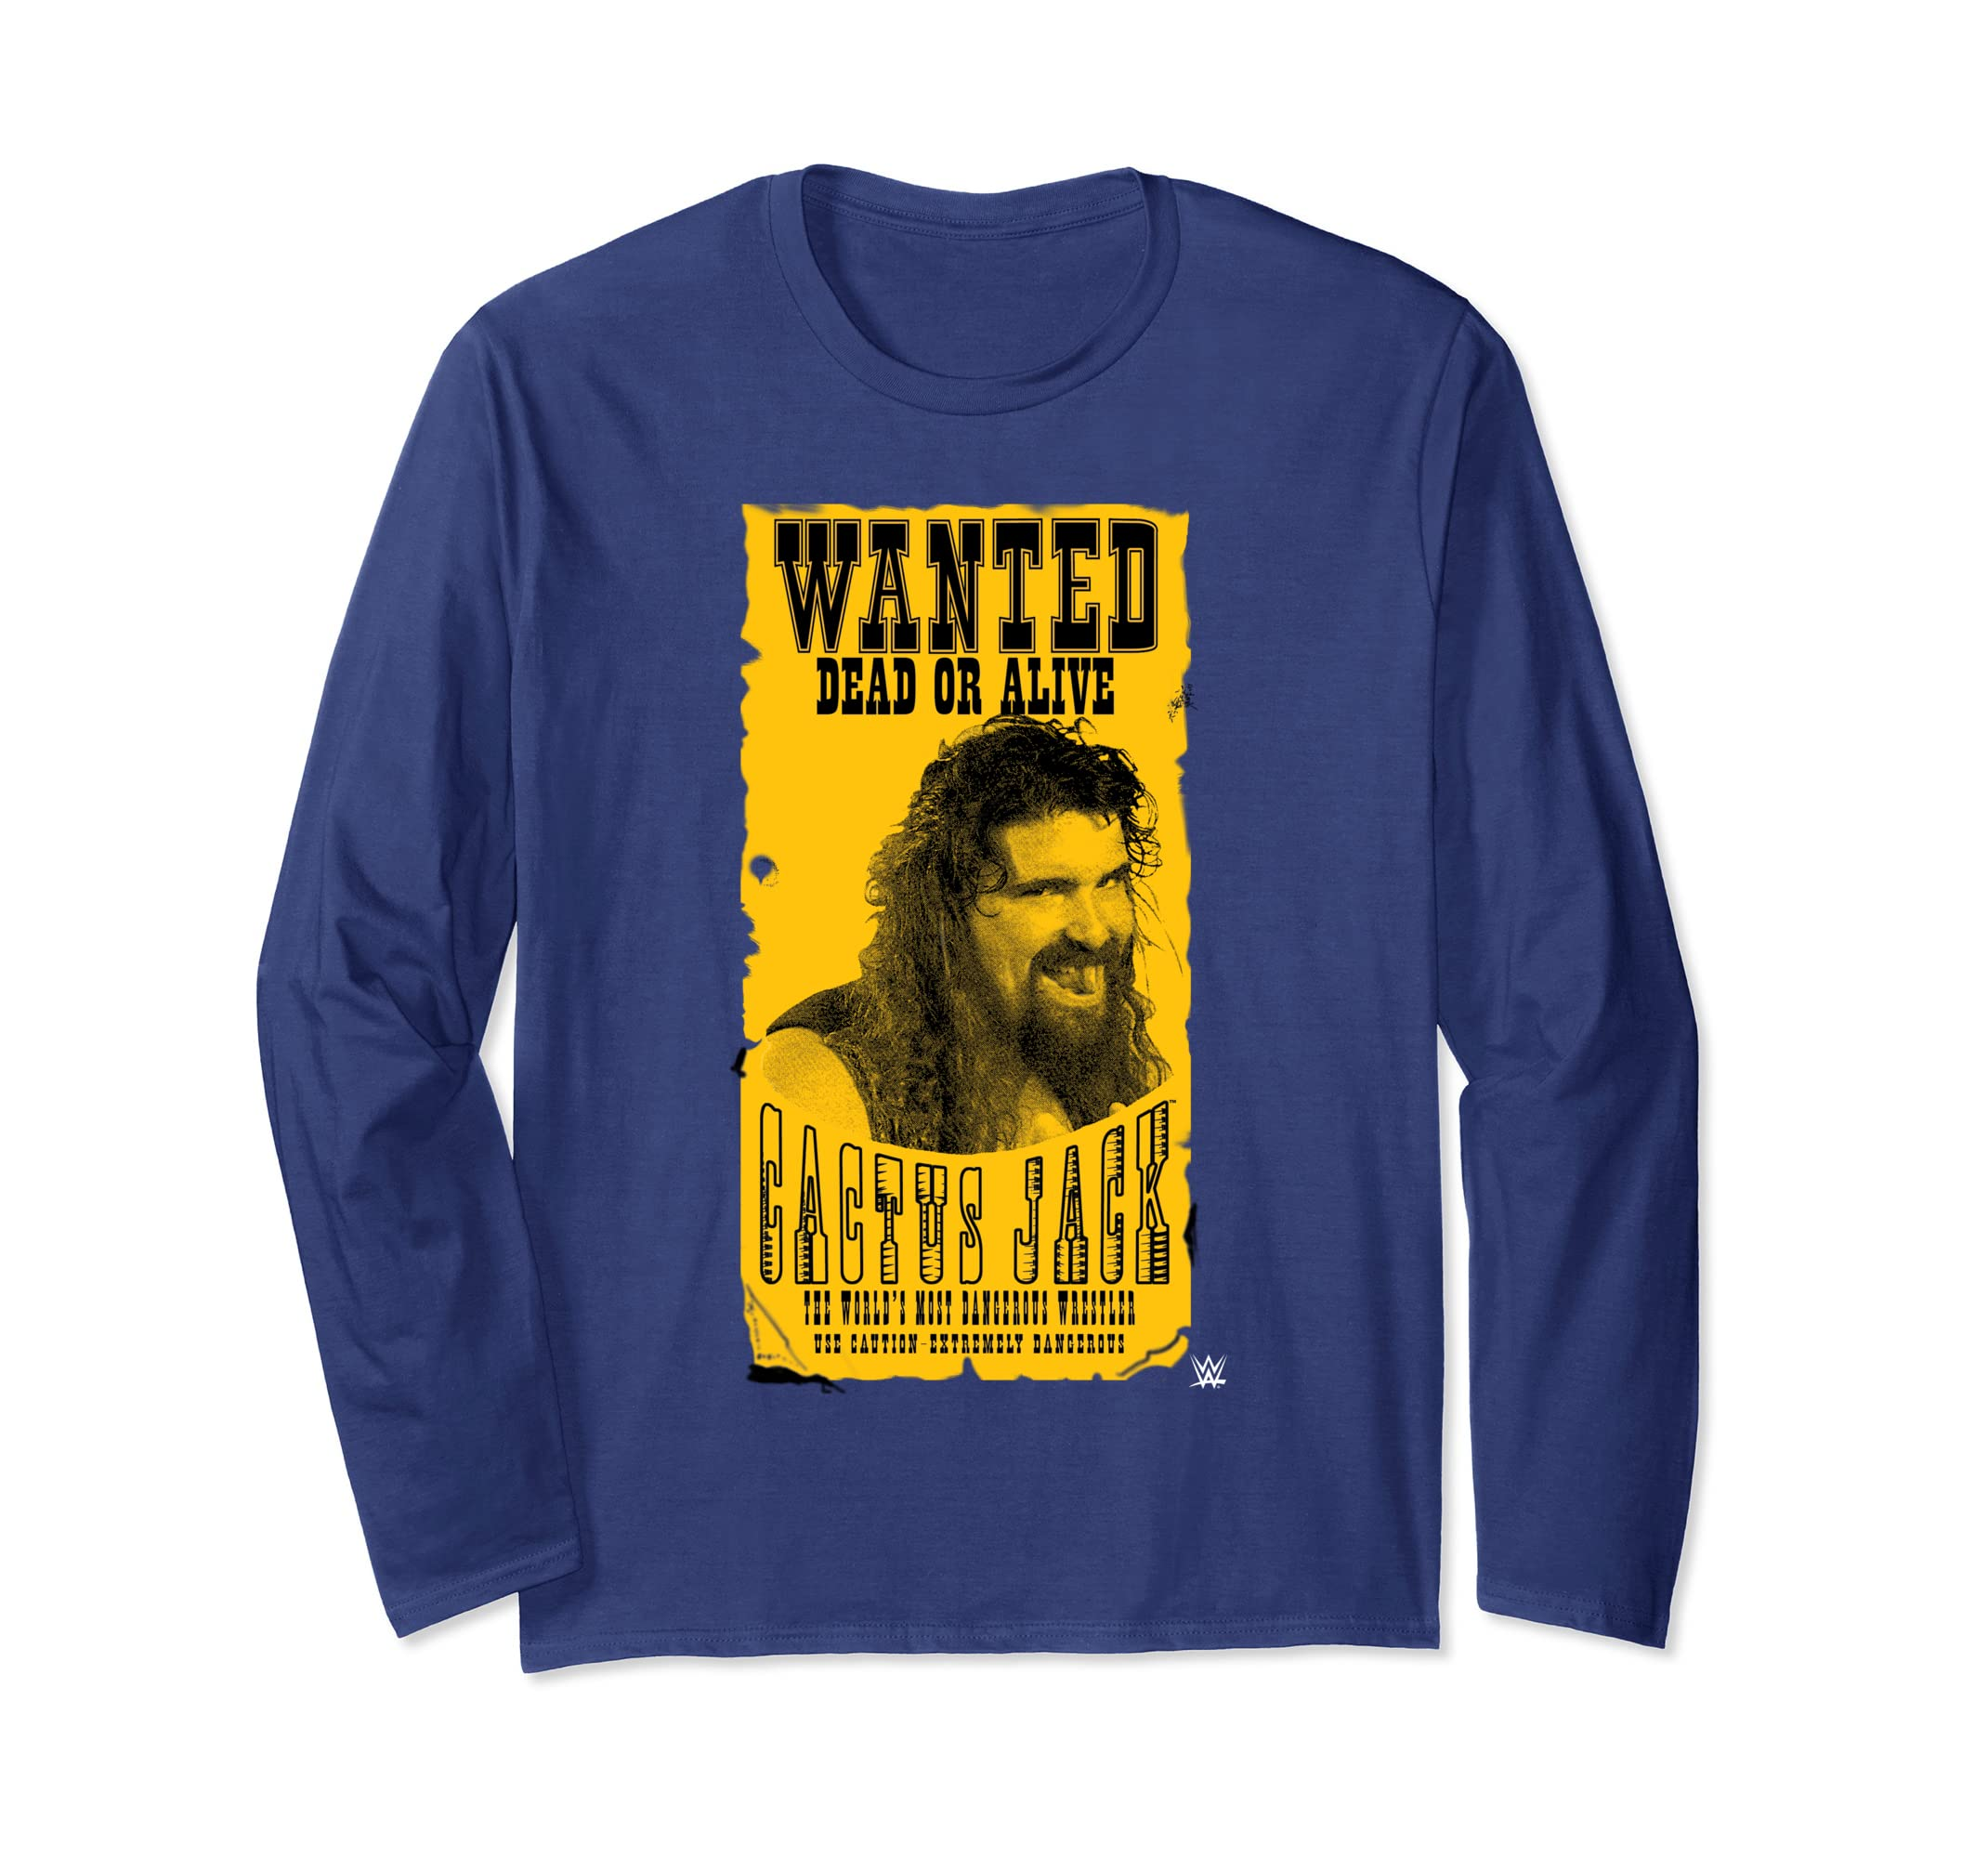 44b059009 Amazon.com: WWE Cactus Jack Wanted Dead Or Alive Long-Sleeve T-Shirt:  Clothing